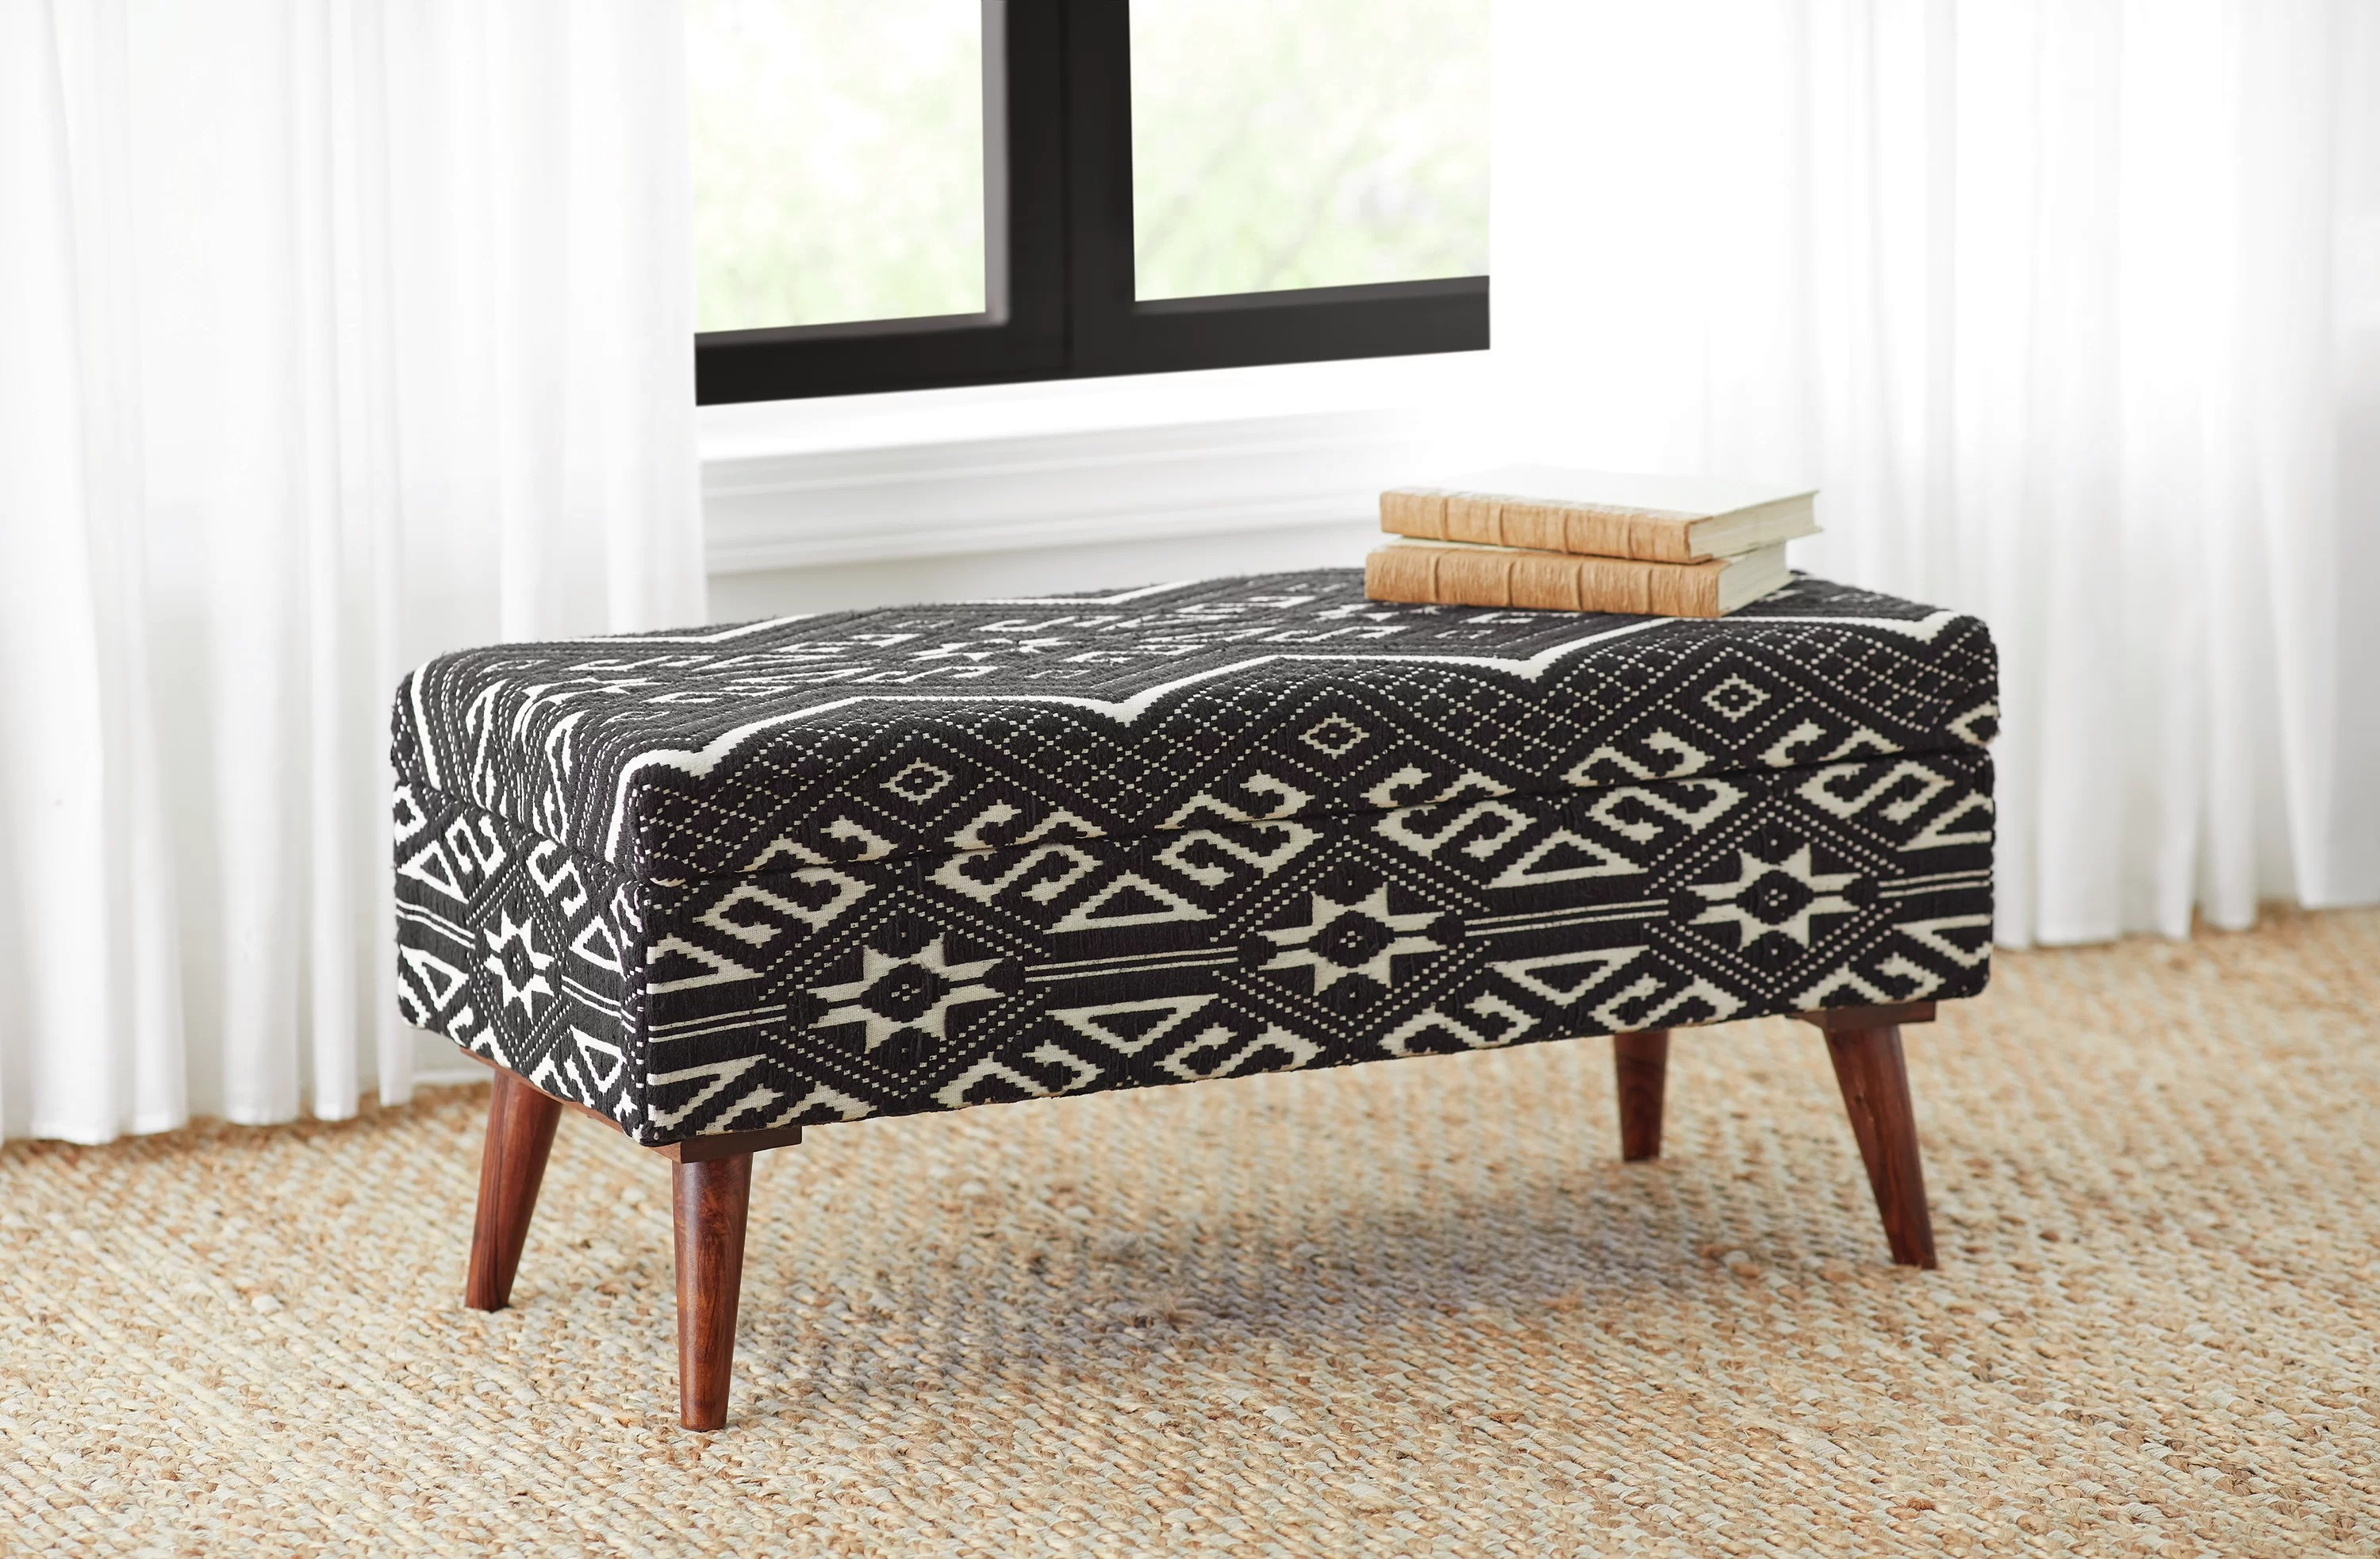 Bungalow Rose Upholstered Bench Black And White Reviews Wayfair